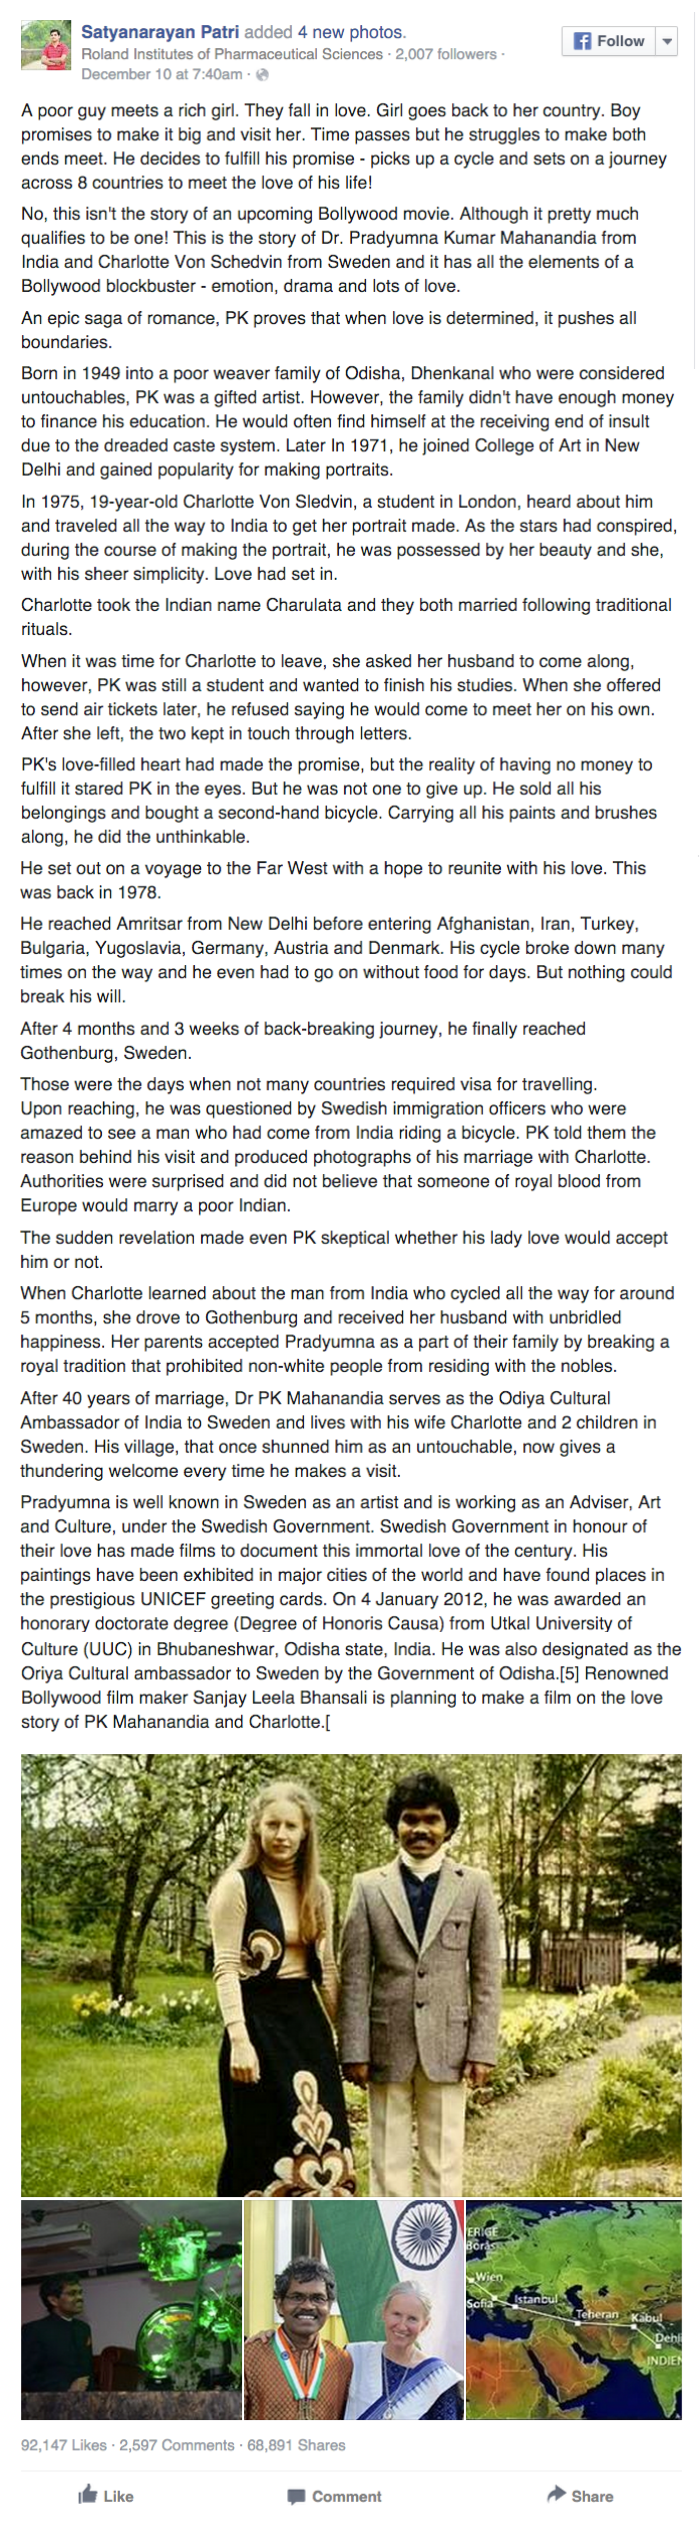 This Long Love Story About A Husband Cycling From India To Sweden For His Wife is Worth the Happy Tear You'll Have By the End